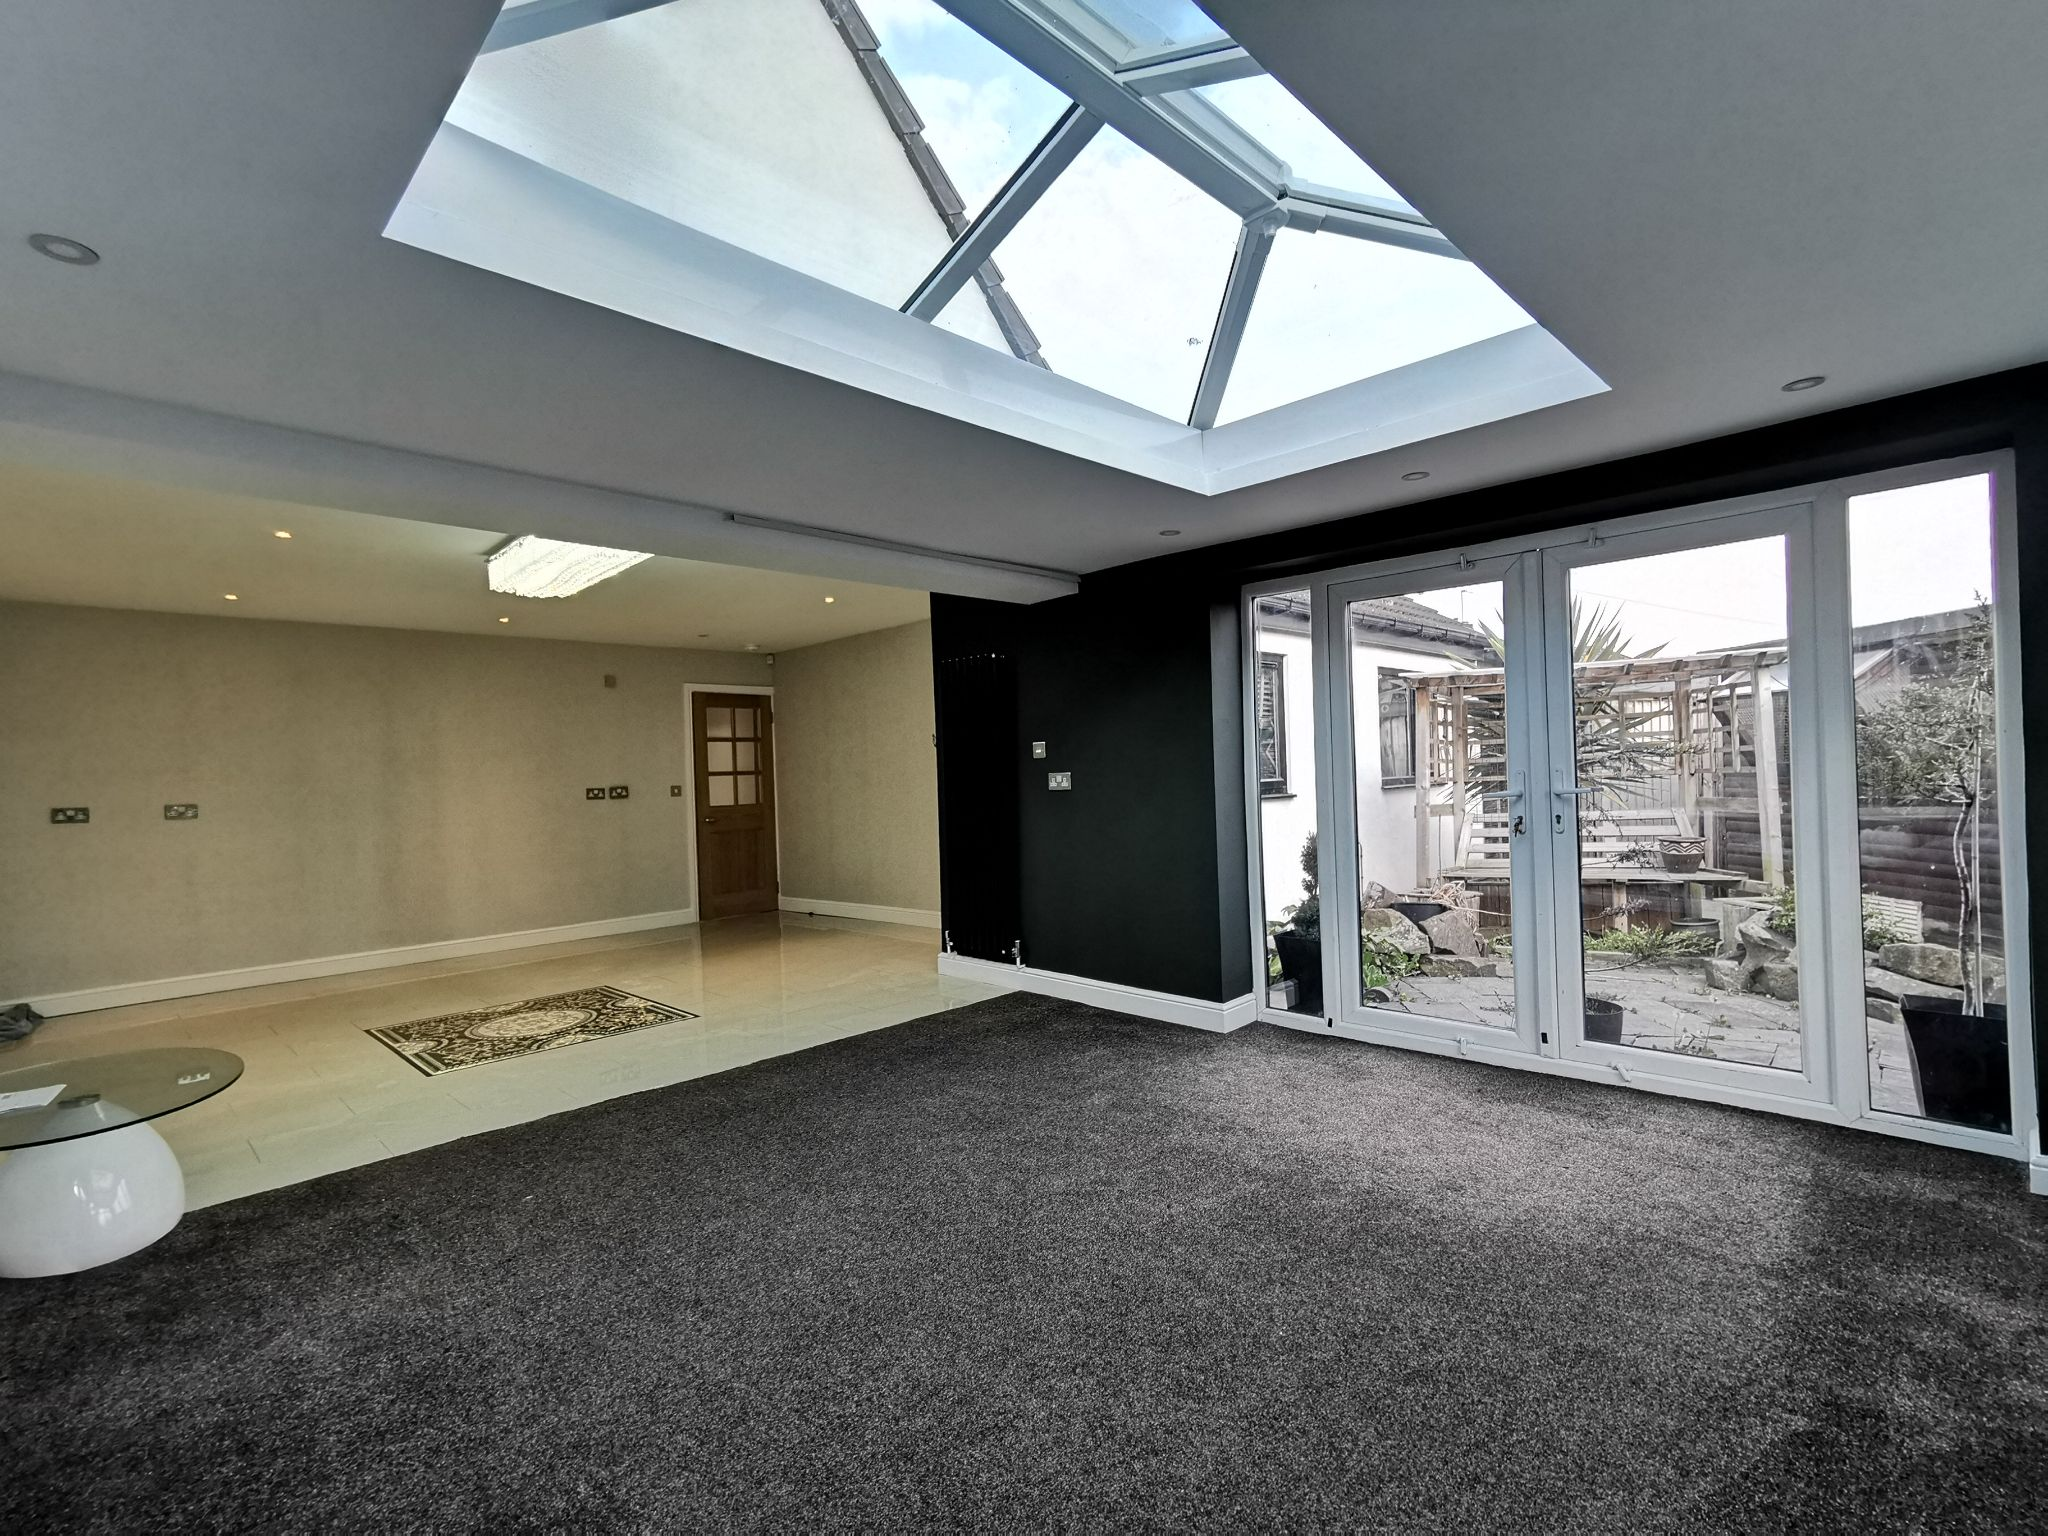 6 bedroom detached bungalow For Sale in Bradford - Photograph 9.